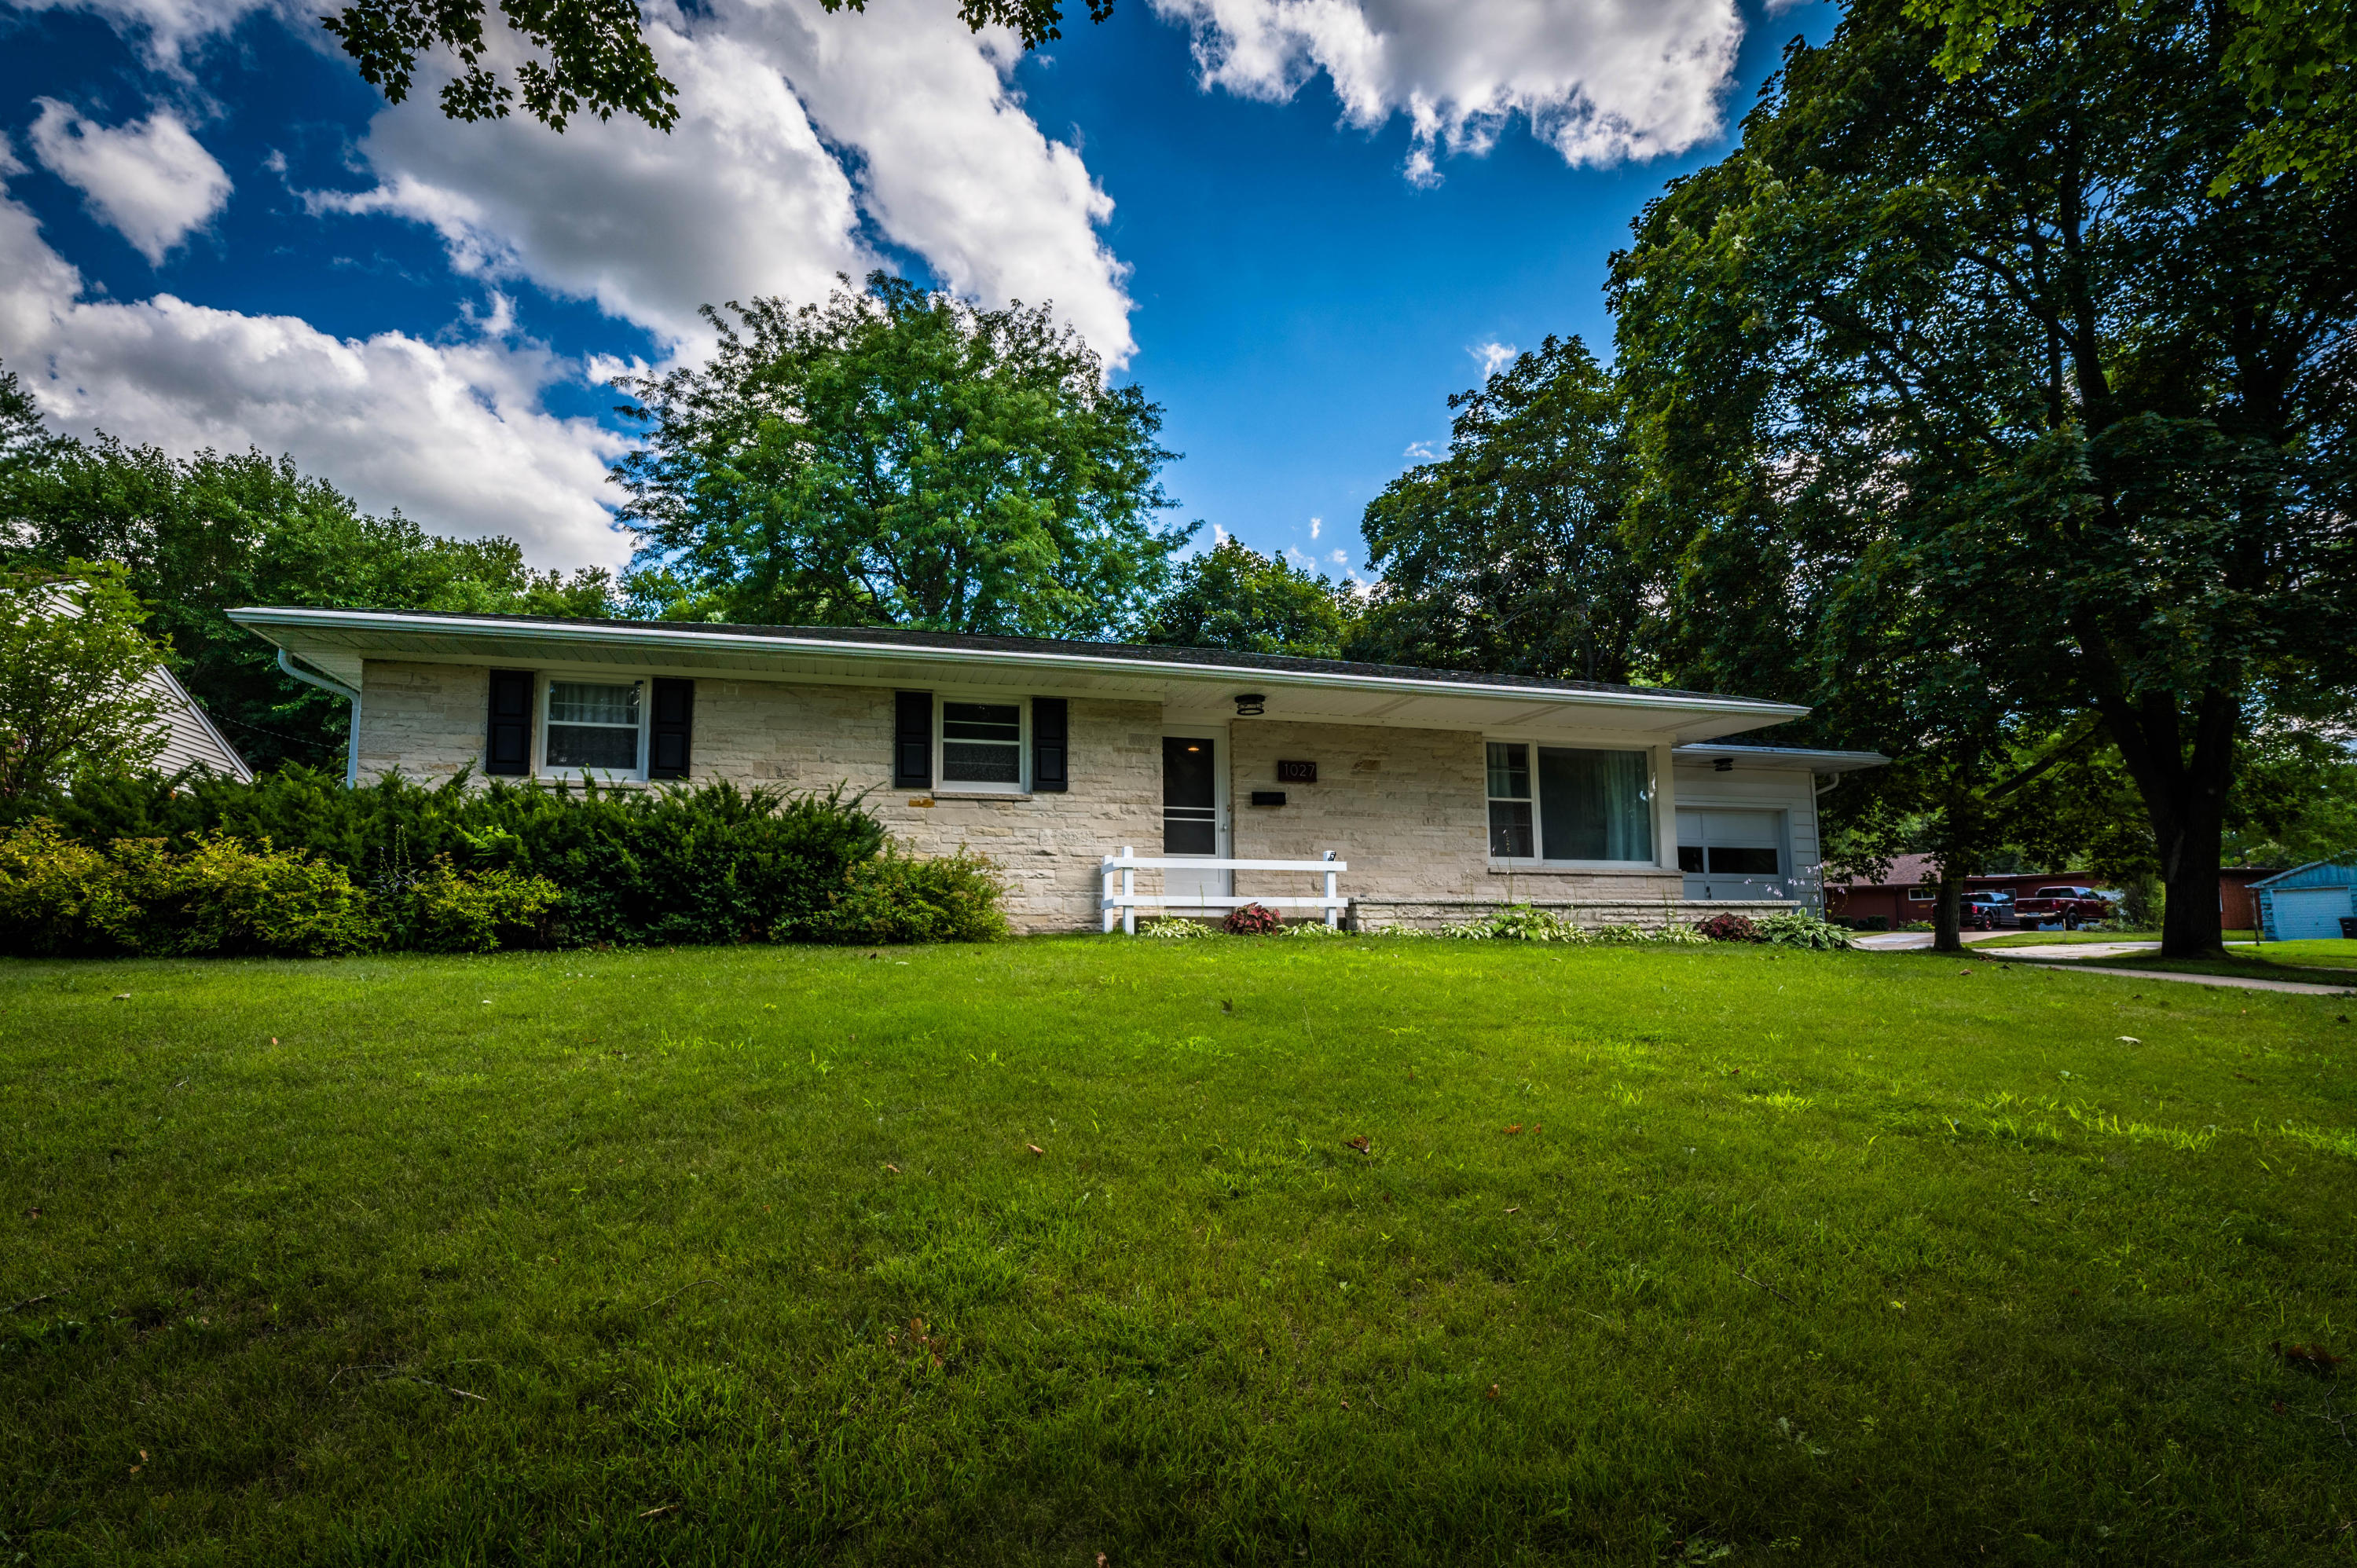 1027 Wabash Ave, Waukesha, Wisconsin 53186, 3 Bedrooms Bedrooms, 8 Rooms Rooms,3 BathroomsBathrooms,Single-Family,For Sale,Wabash Ave,1701350